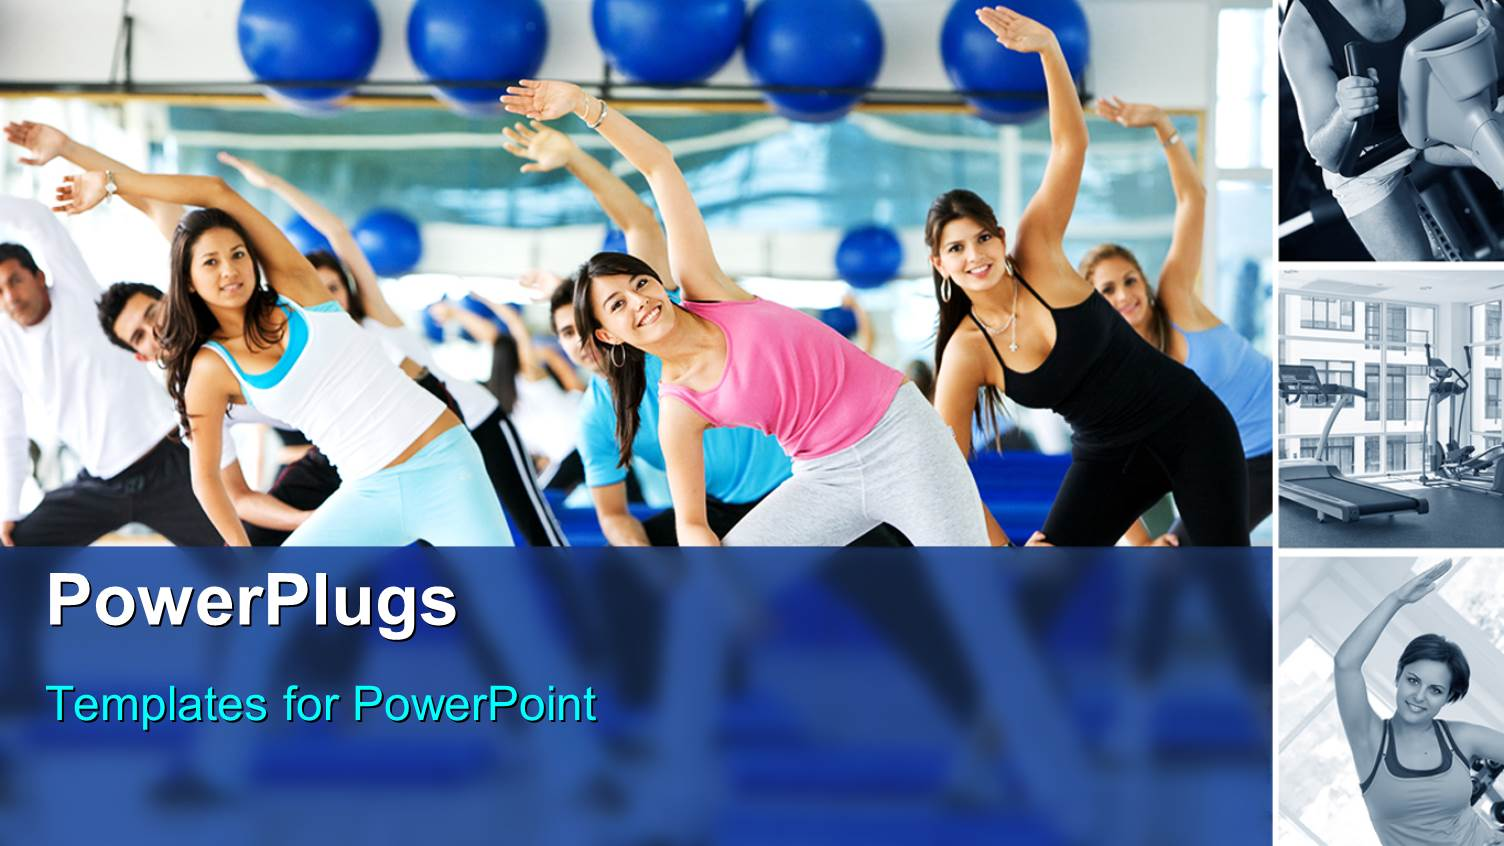 5000 gym powerpoint templates w gym themed backgrounds colorful ppt theme having group zumba class yoga exercise stretching blue background toneelgroepblik Images